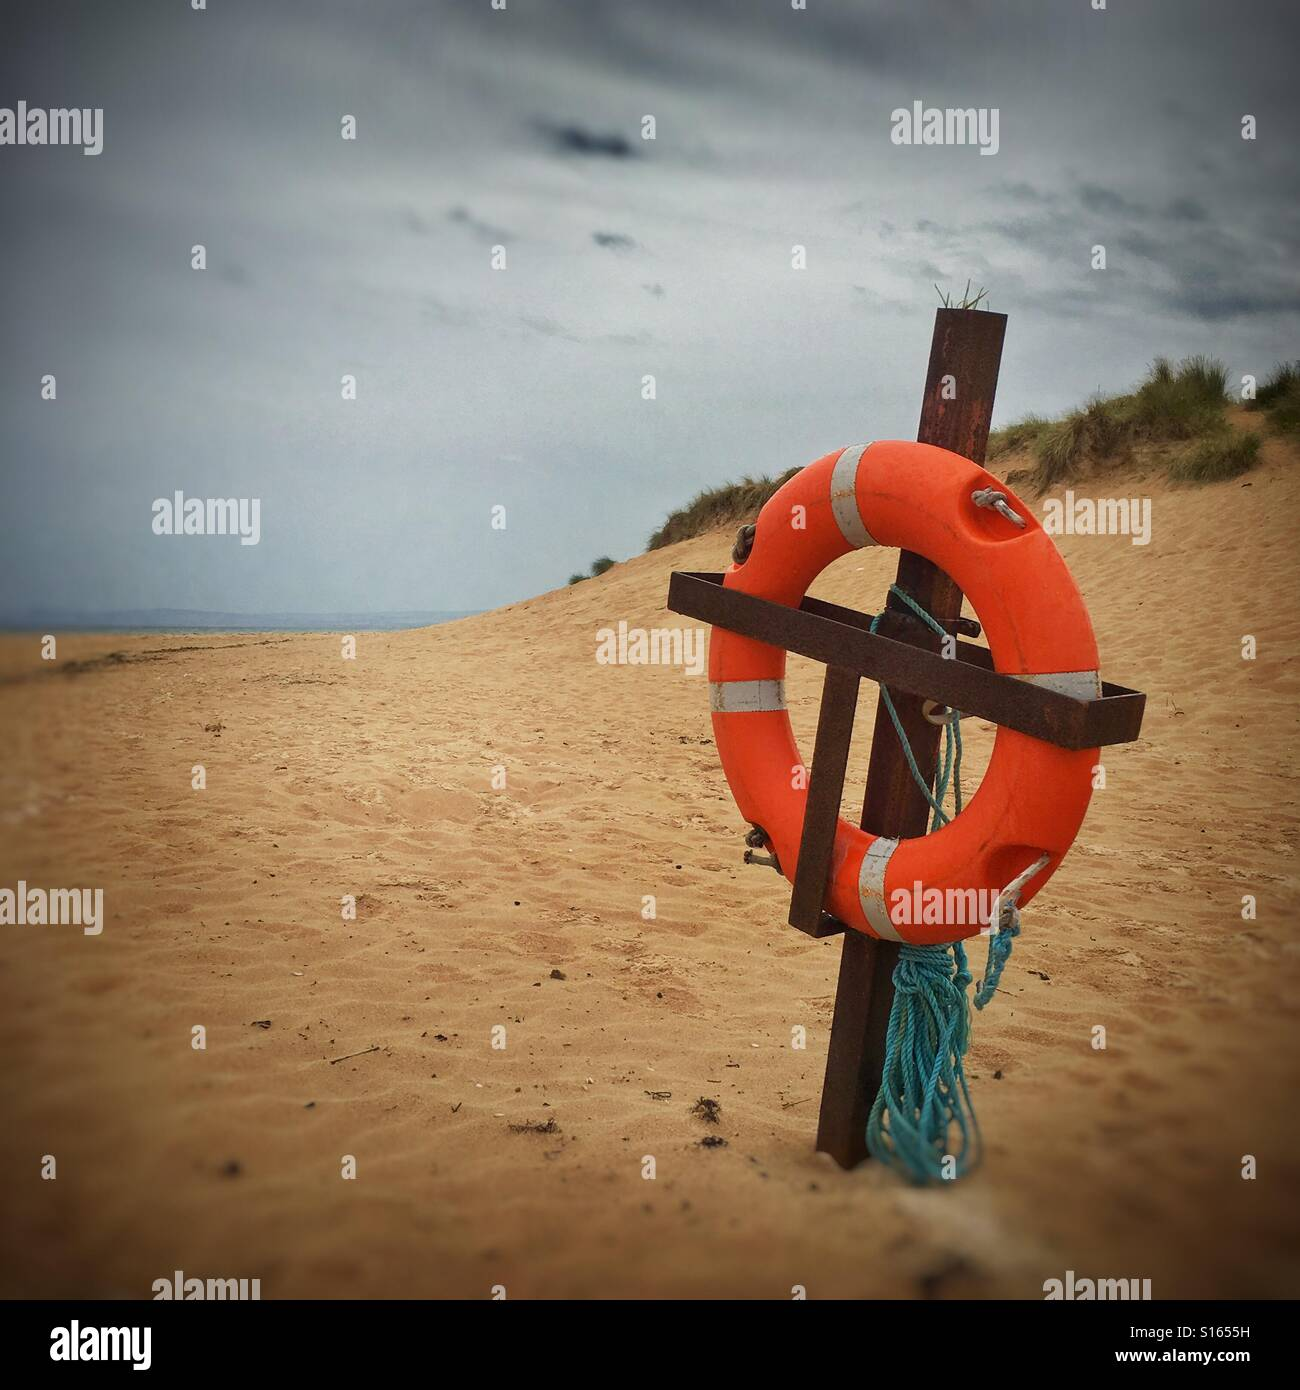 Lifebouy sitting patiently on a deserted beach at Lossiemouth, Scotland. - Stock Image